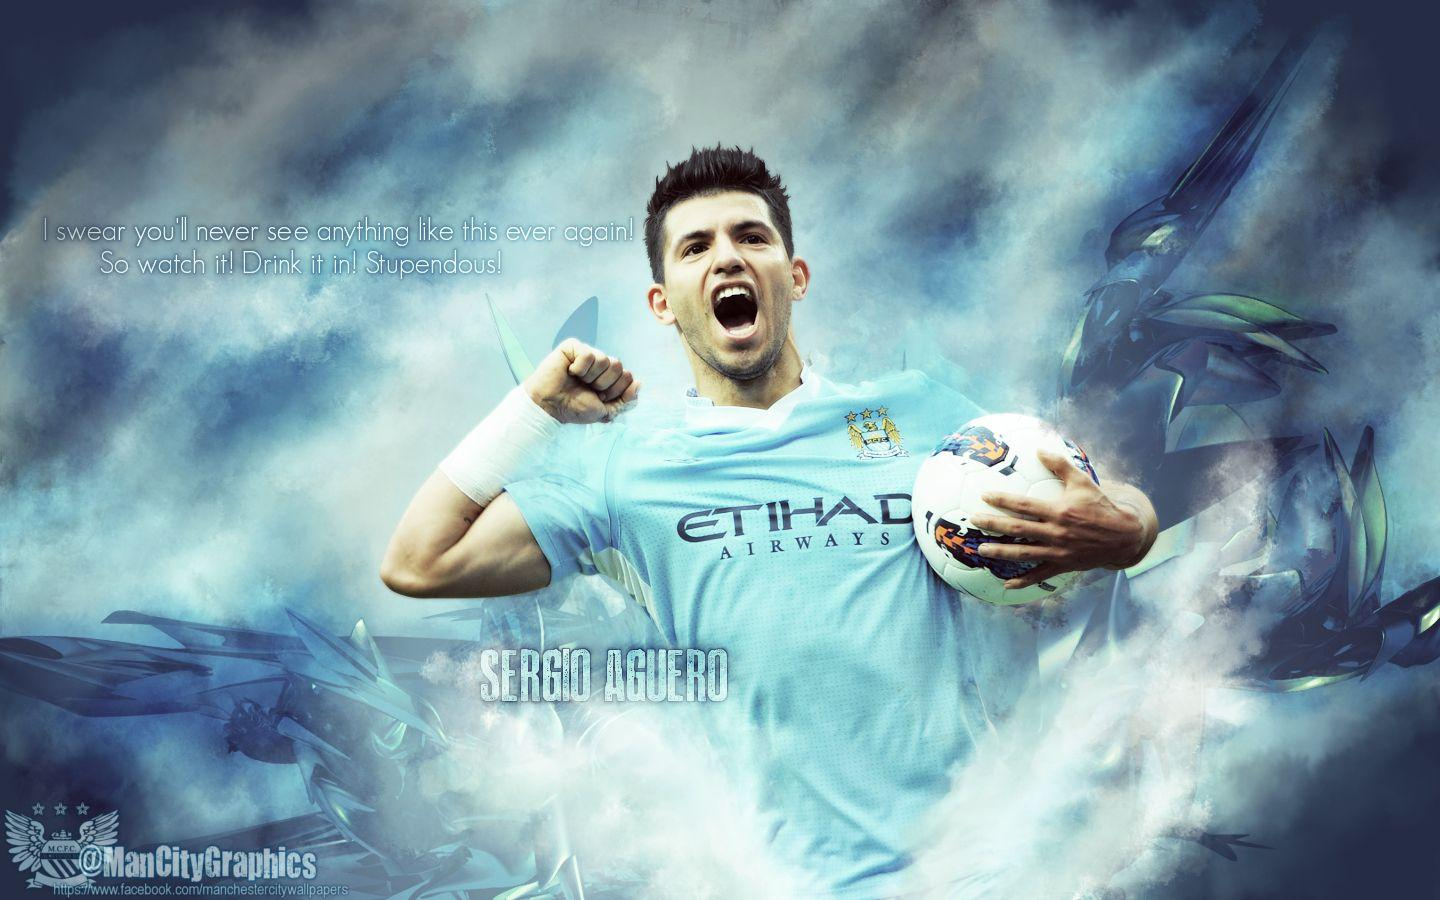 Sergio Aguero Soccer Player Wallpapers: Sergio Agüero Wallpapers